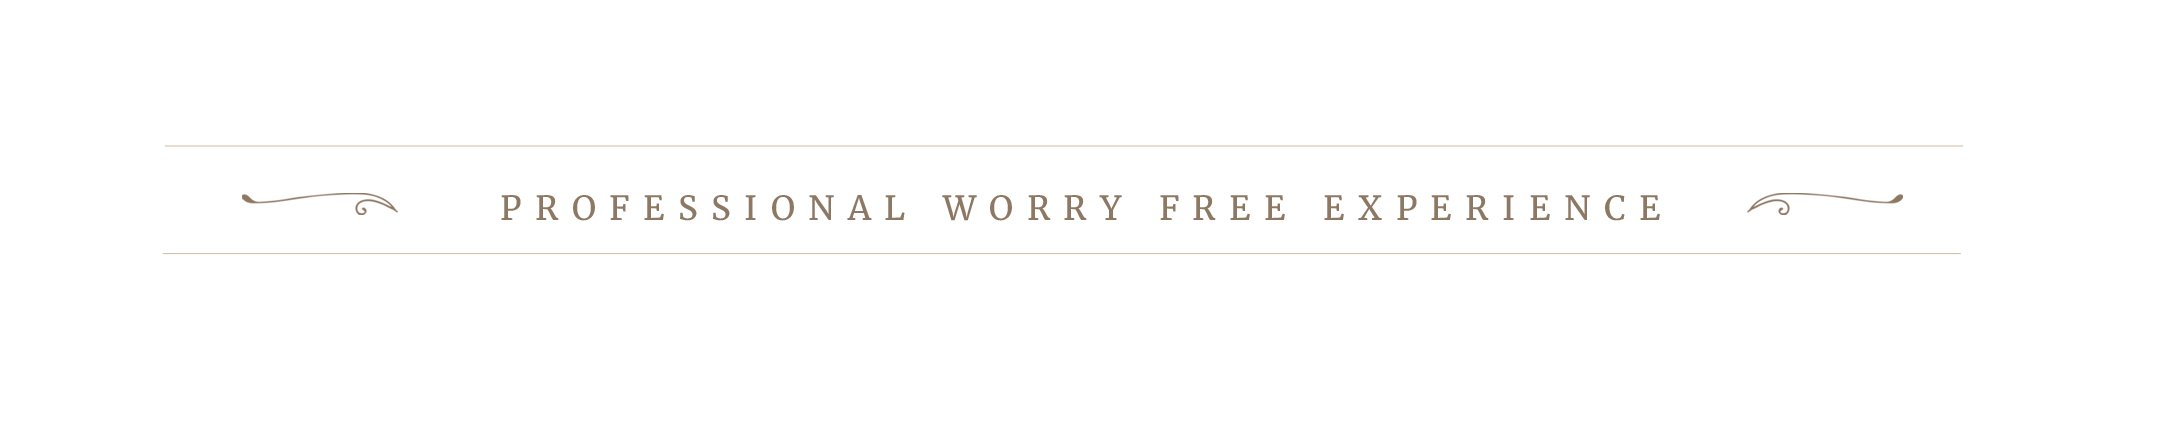 PROFESSIONAL WORRY FREE.png